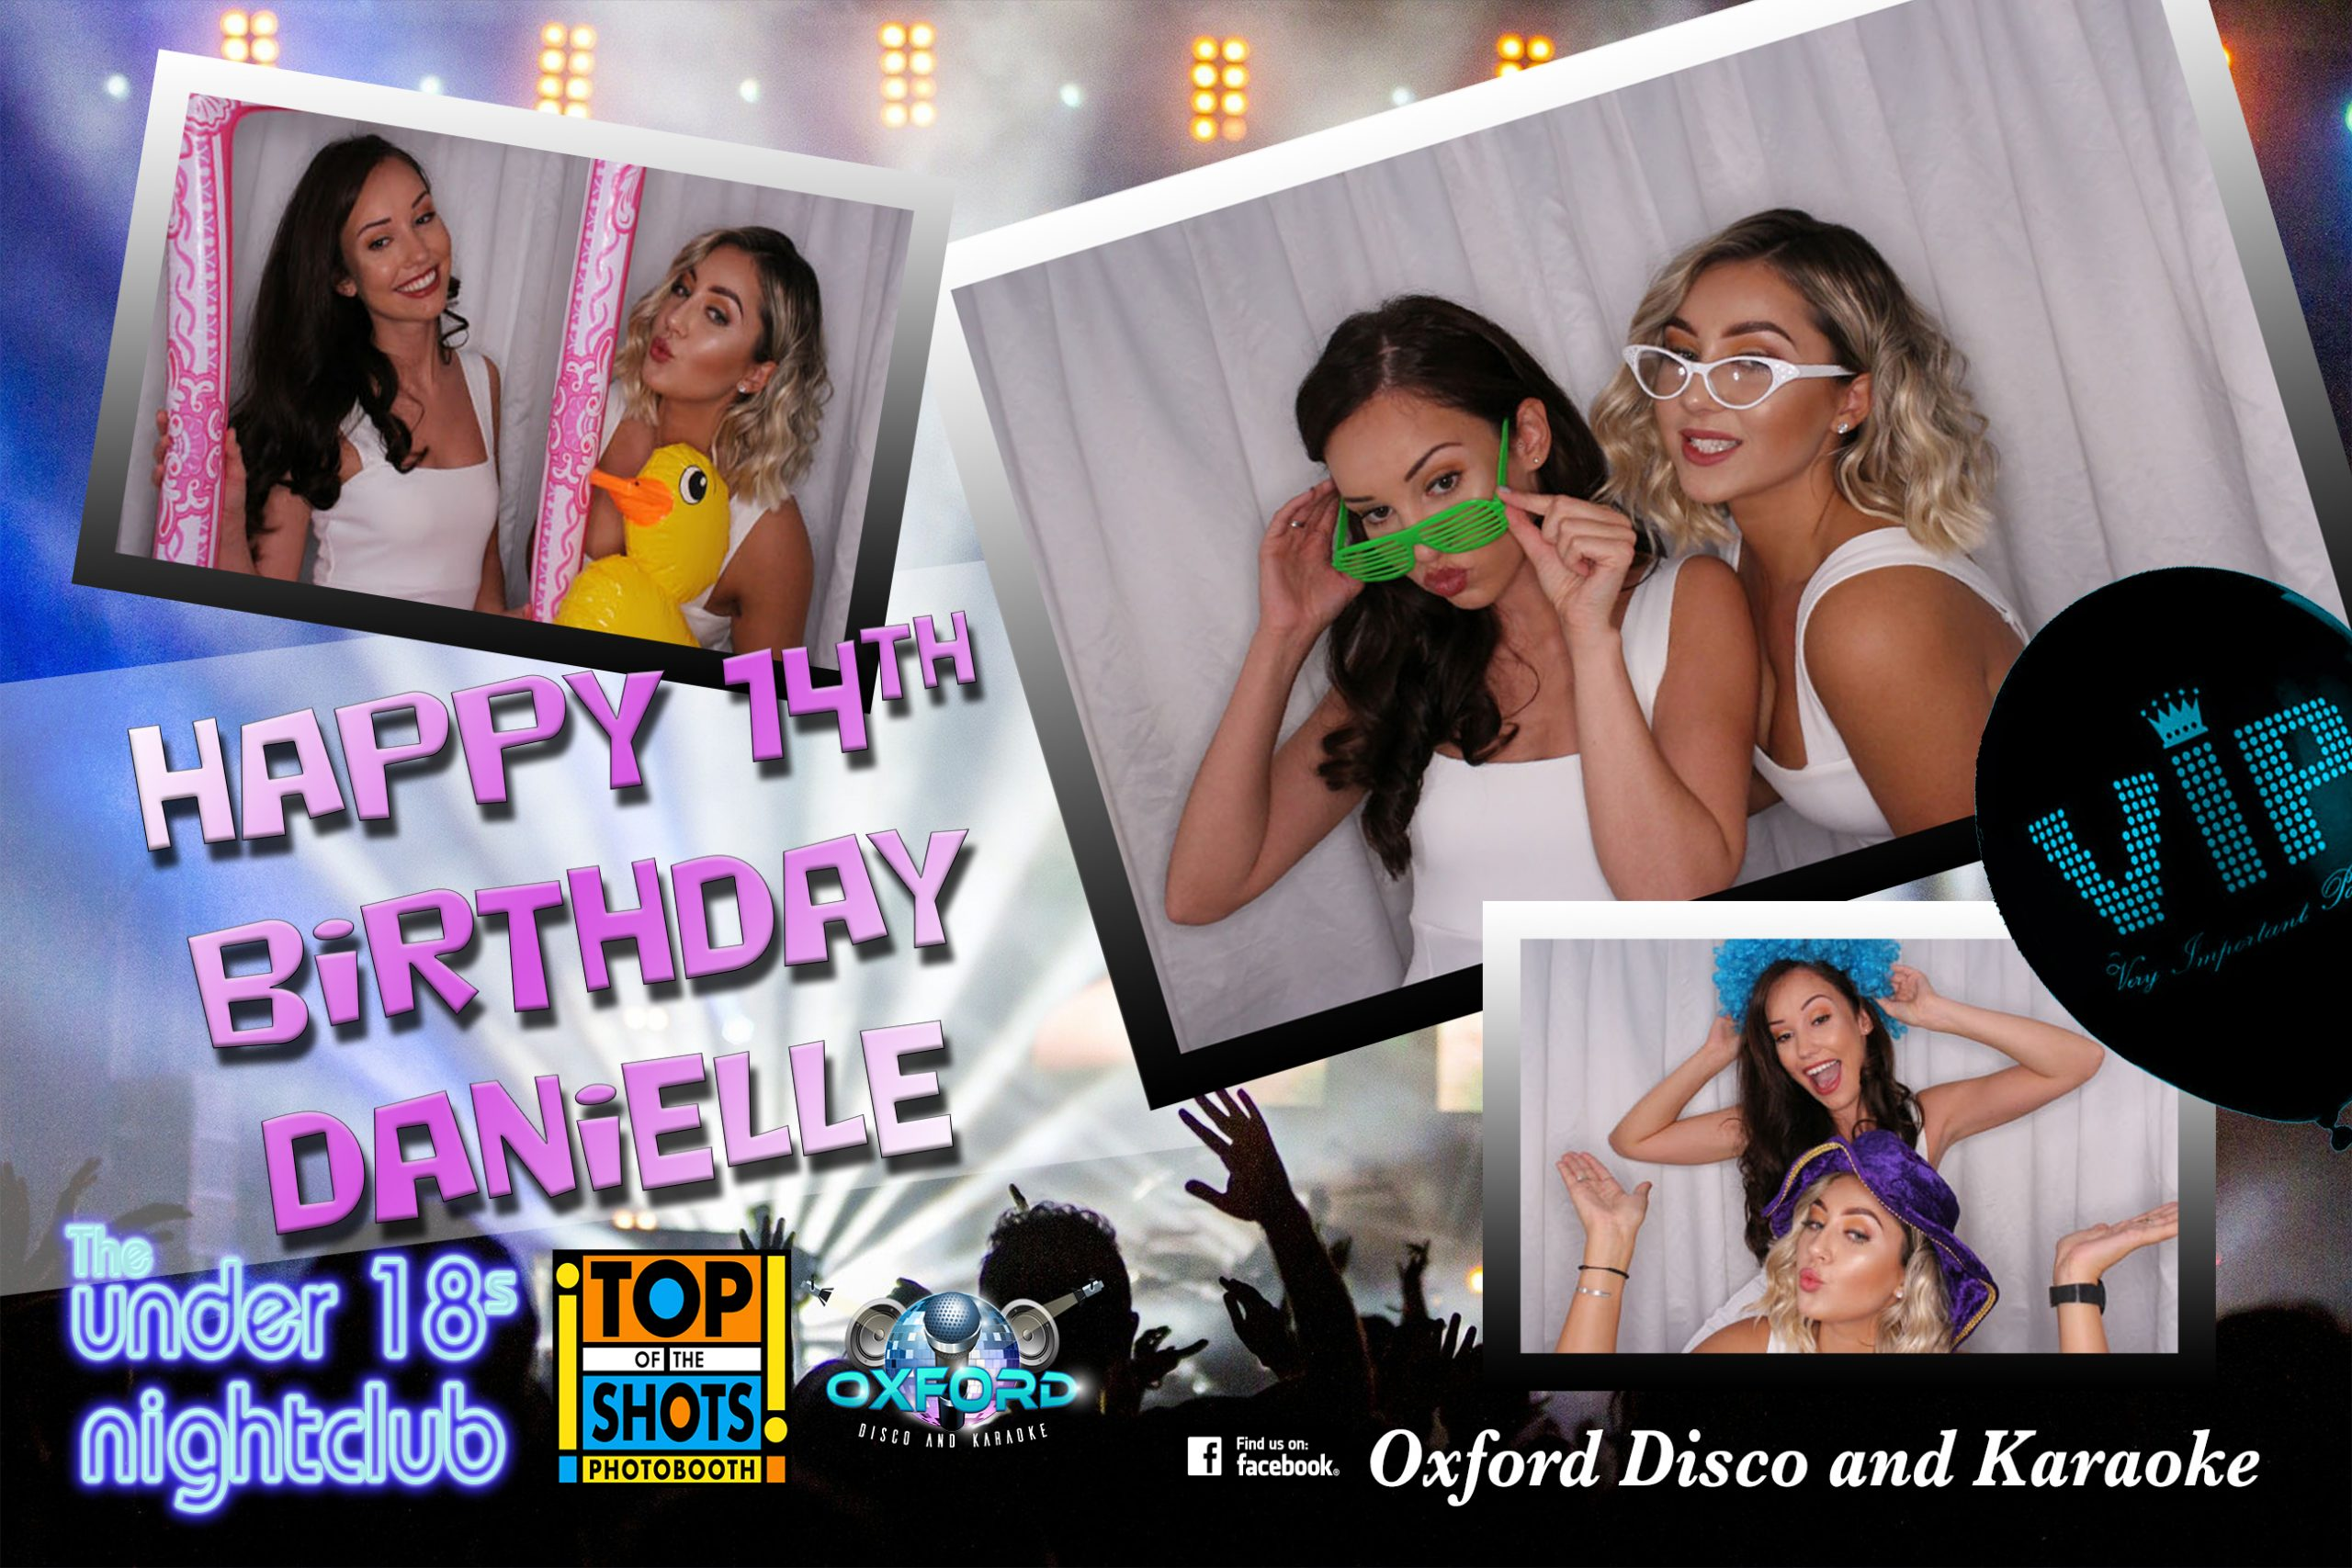 Oxford Disco and Karaoke Under 18s Nightclub Tempalte